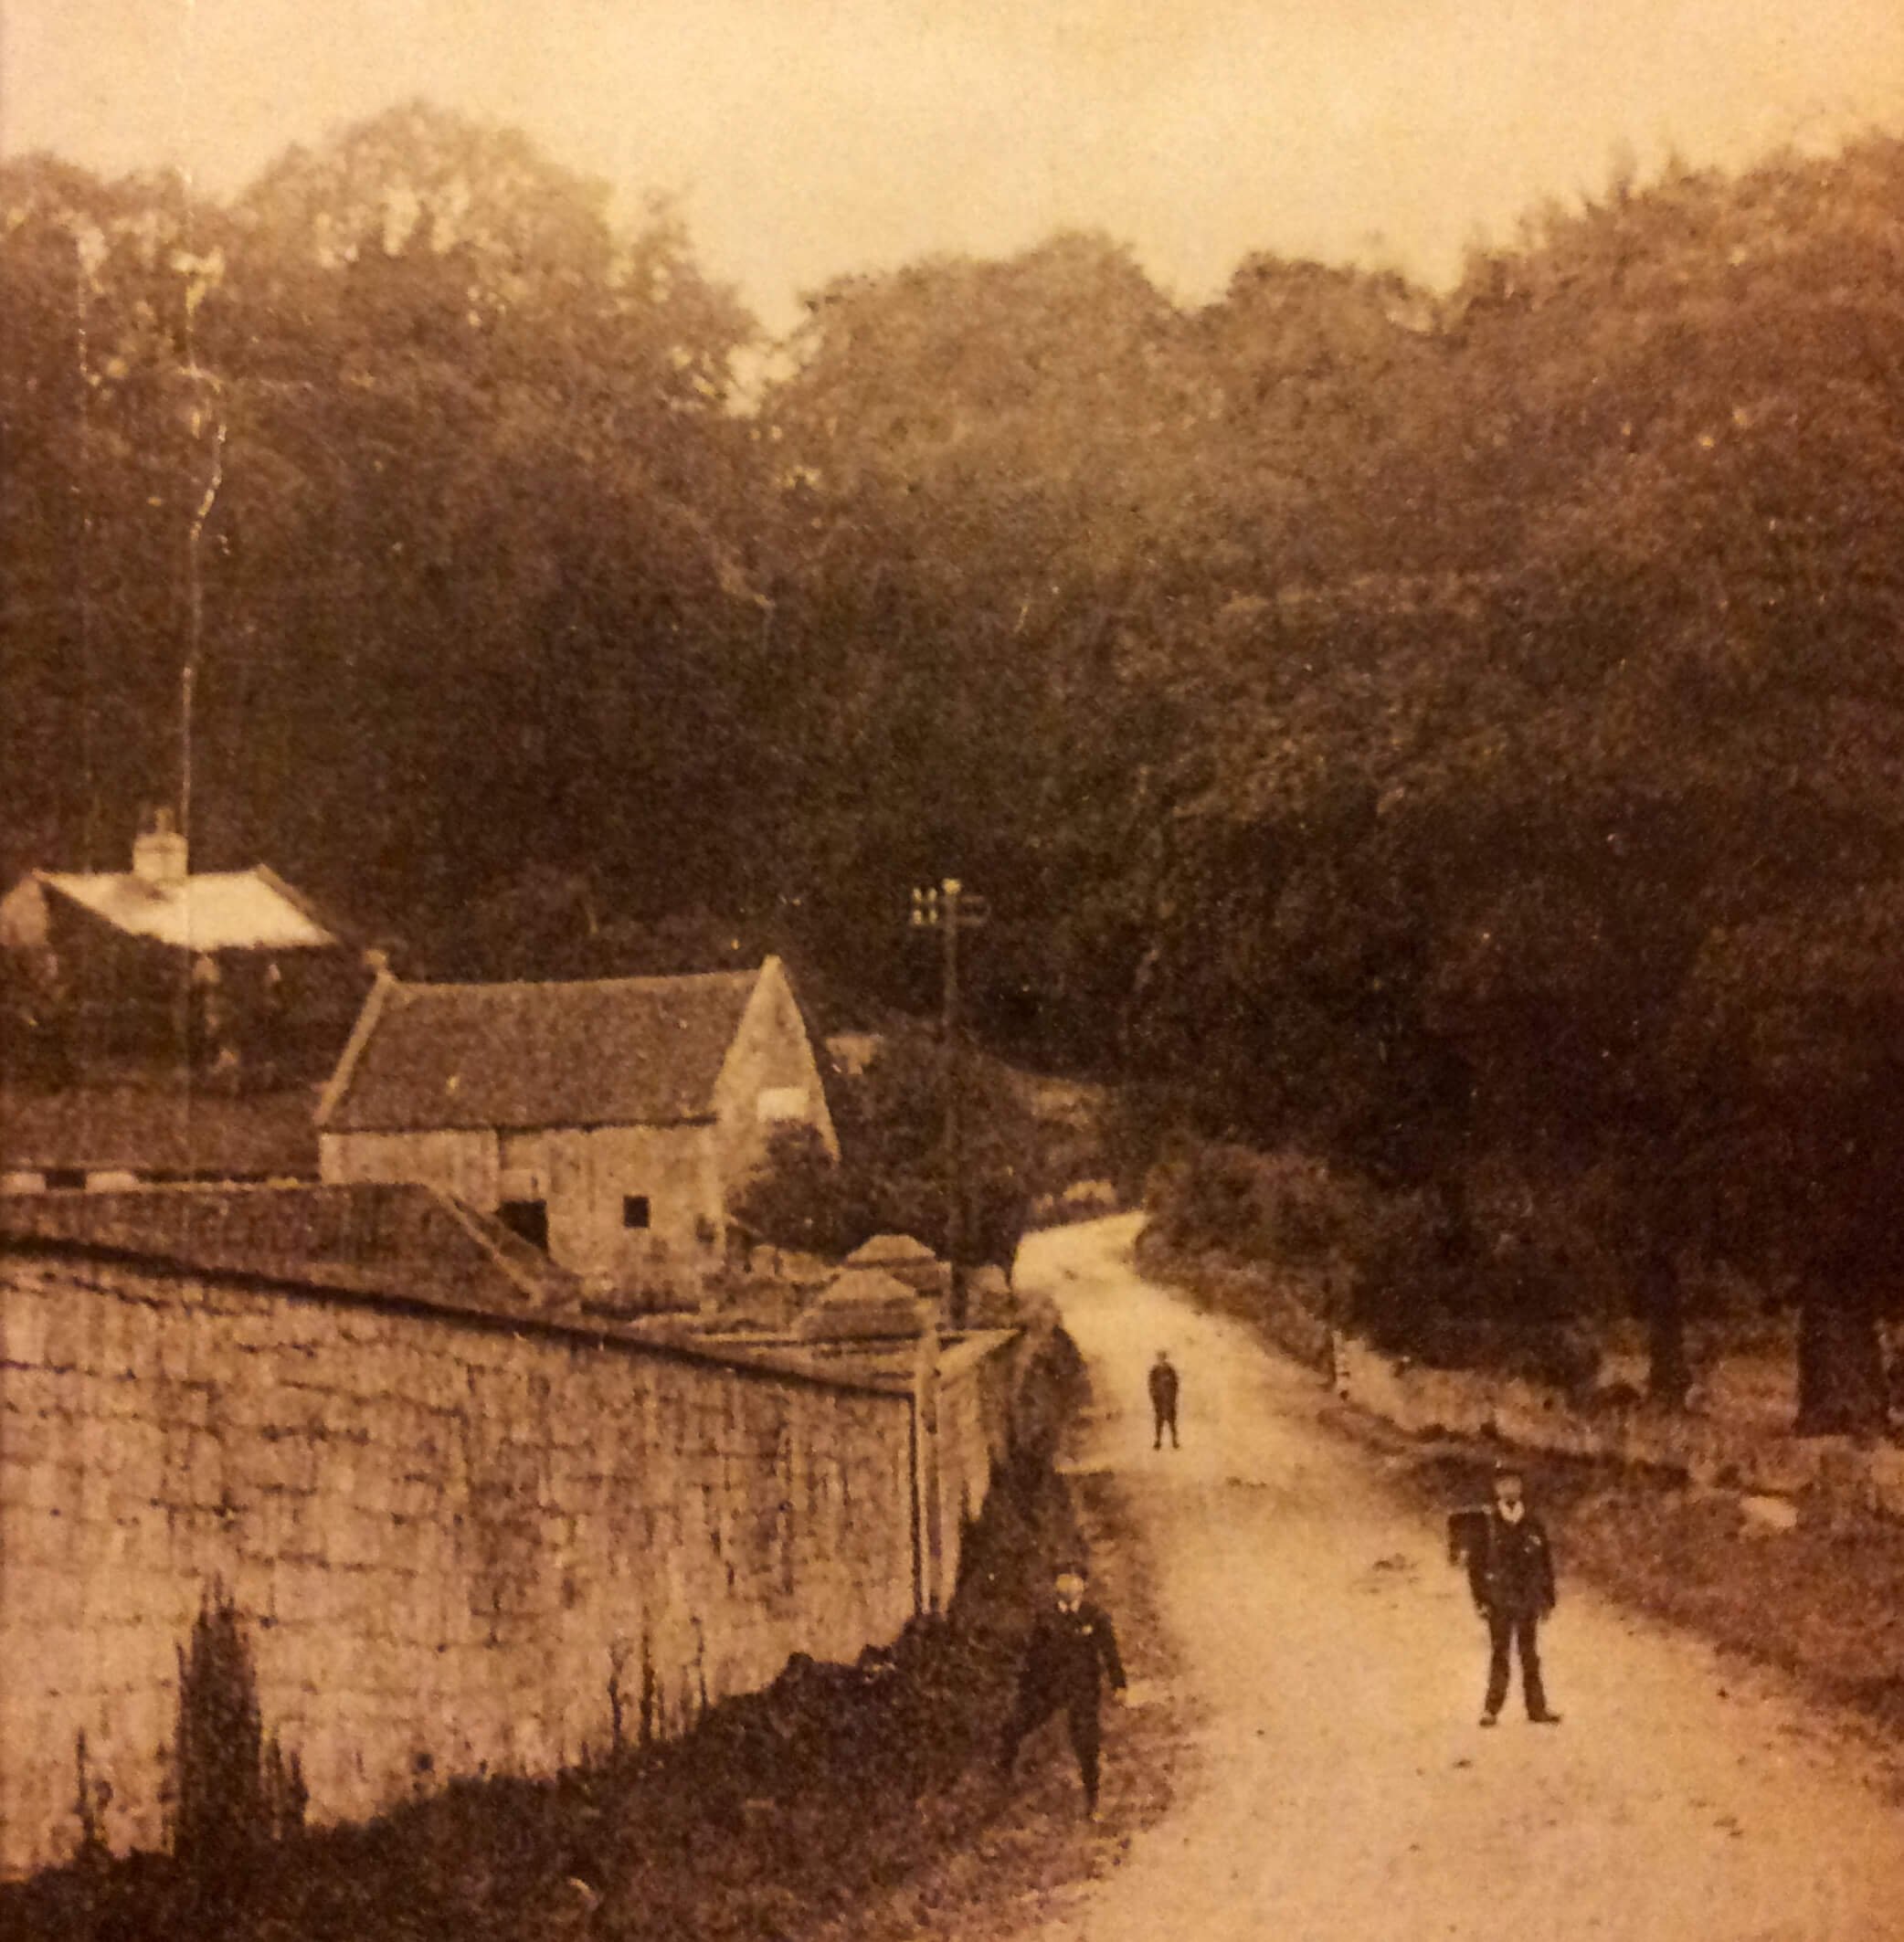 Summer Lane, Combe Down, early 1900s